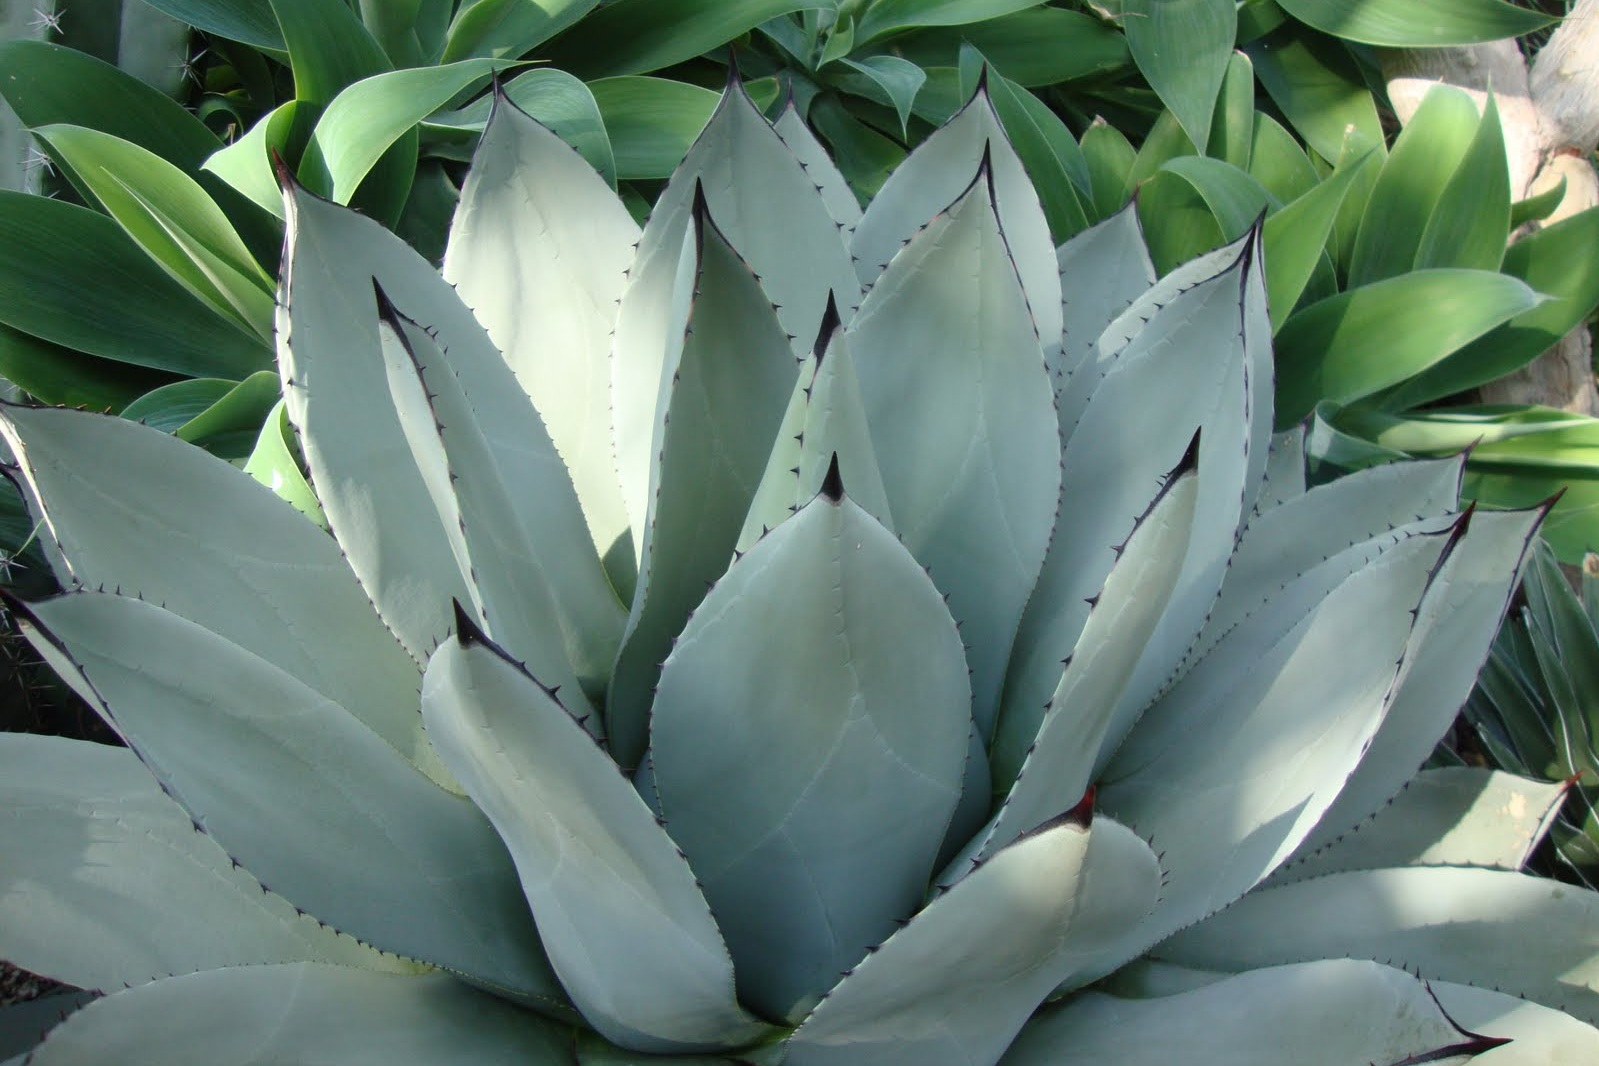 Agave parryi var. 'Truncata' -  Succulent  ⬈ Reaching a height of 2-3' and a width of 3-4' ☀ Full Sun ☂ Low  A compact rosette-forming succulent with broad, short, blue-gray leaves which have prominent reddish-brown teeth and terminal spines.